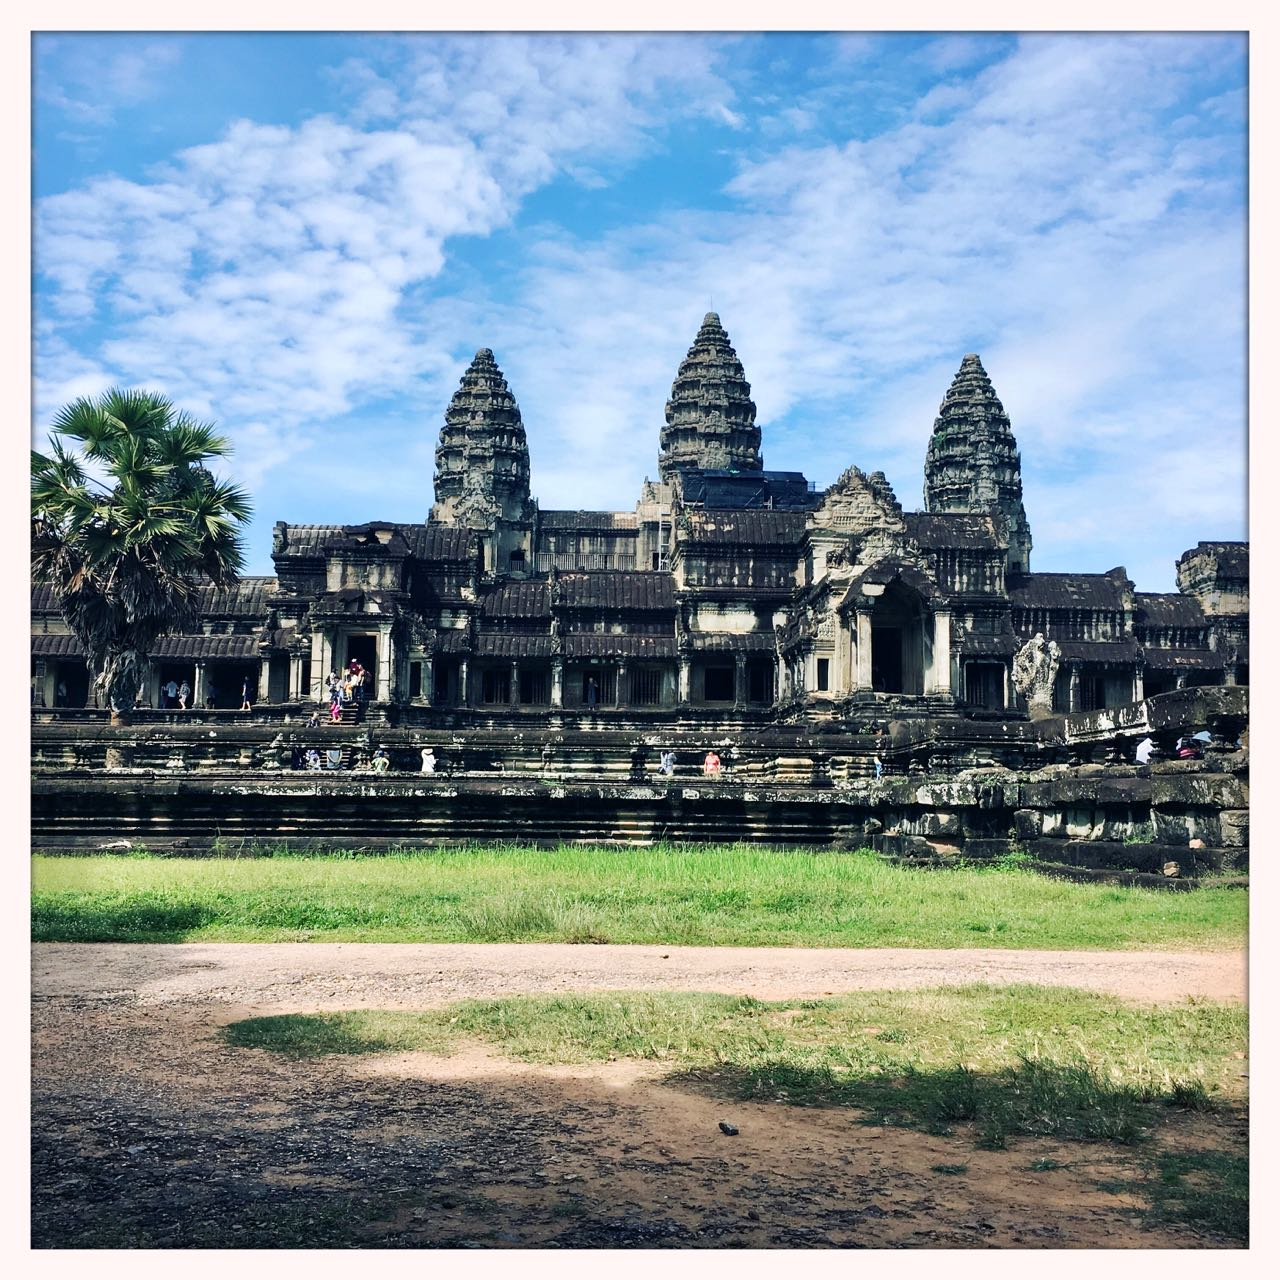 And then there was Angkor Wat (part two)